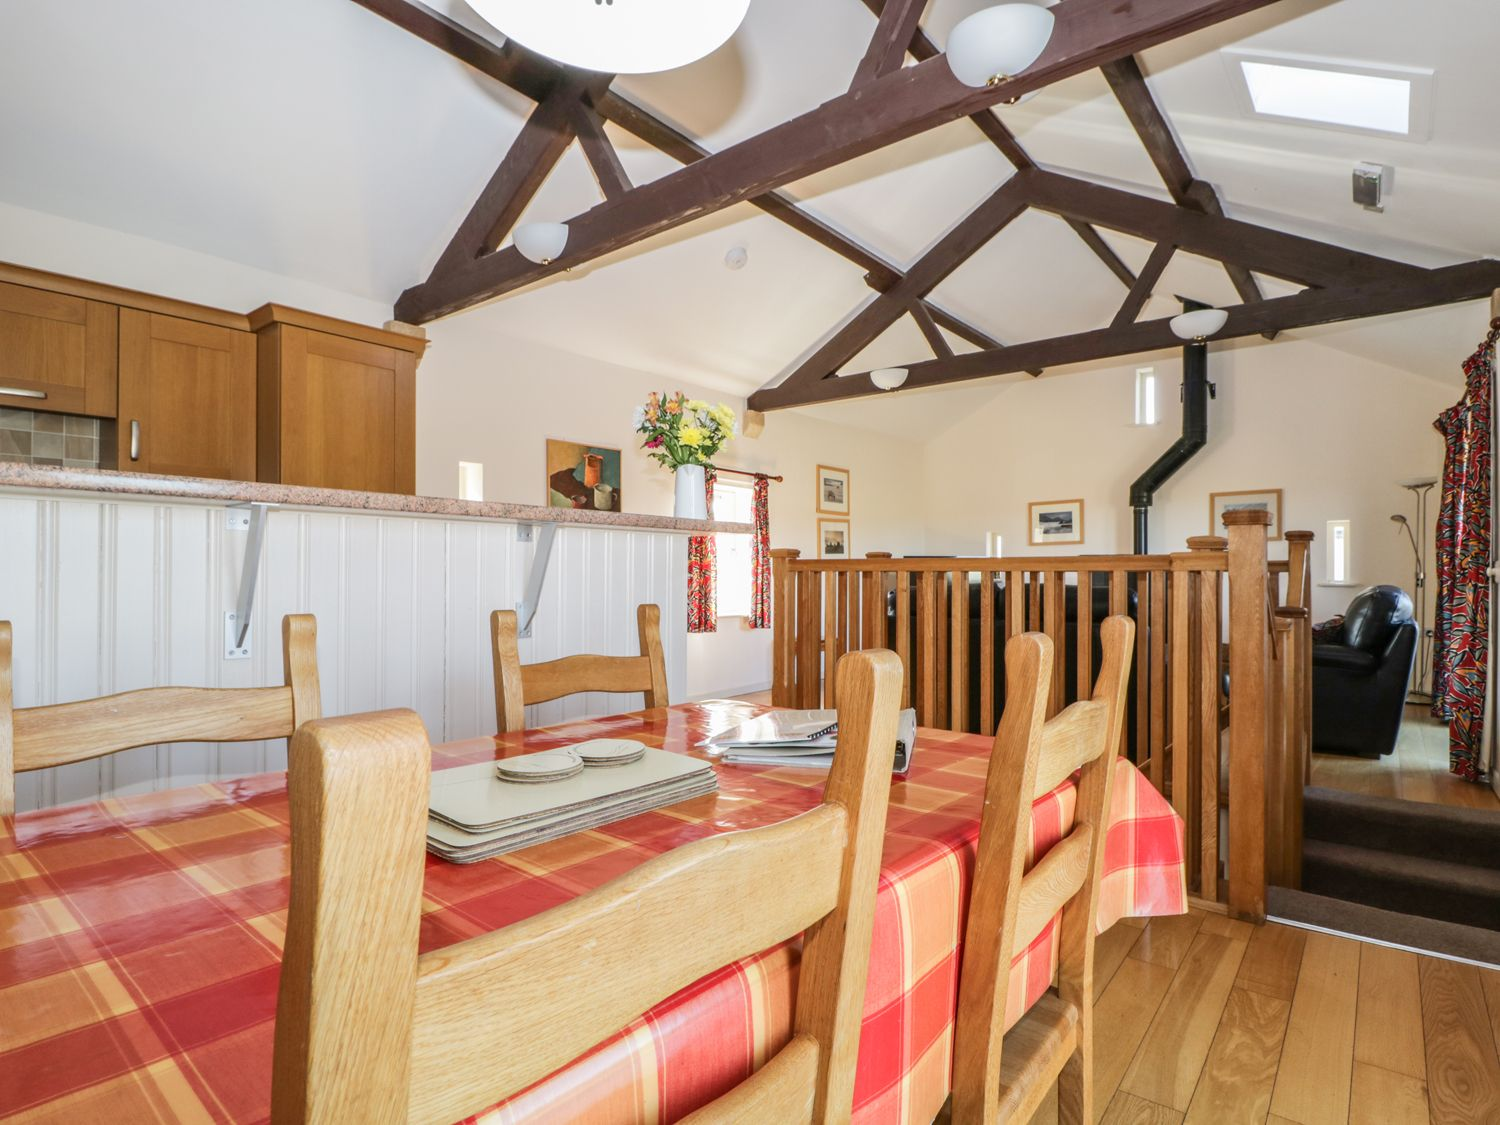 Esthers Barn in Cockermouth - sleeps 4 people